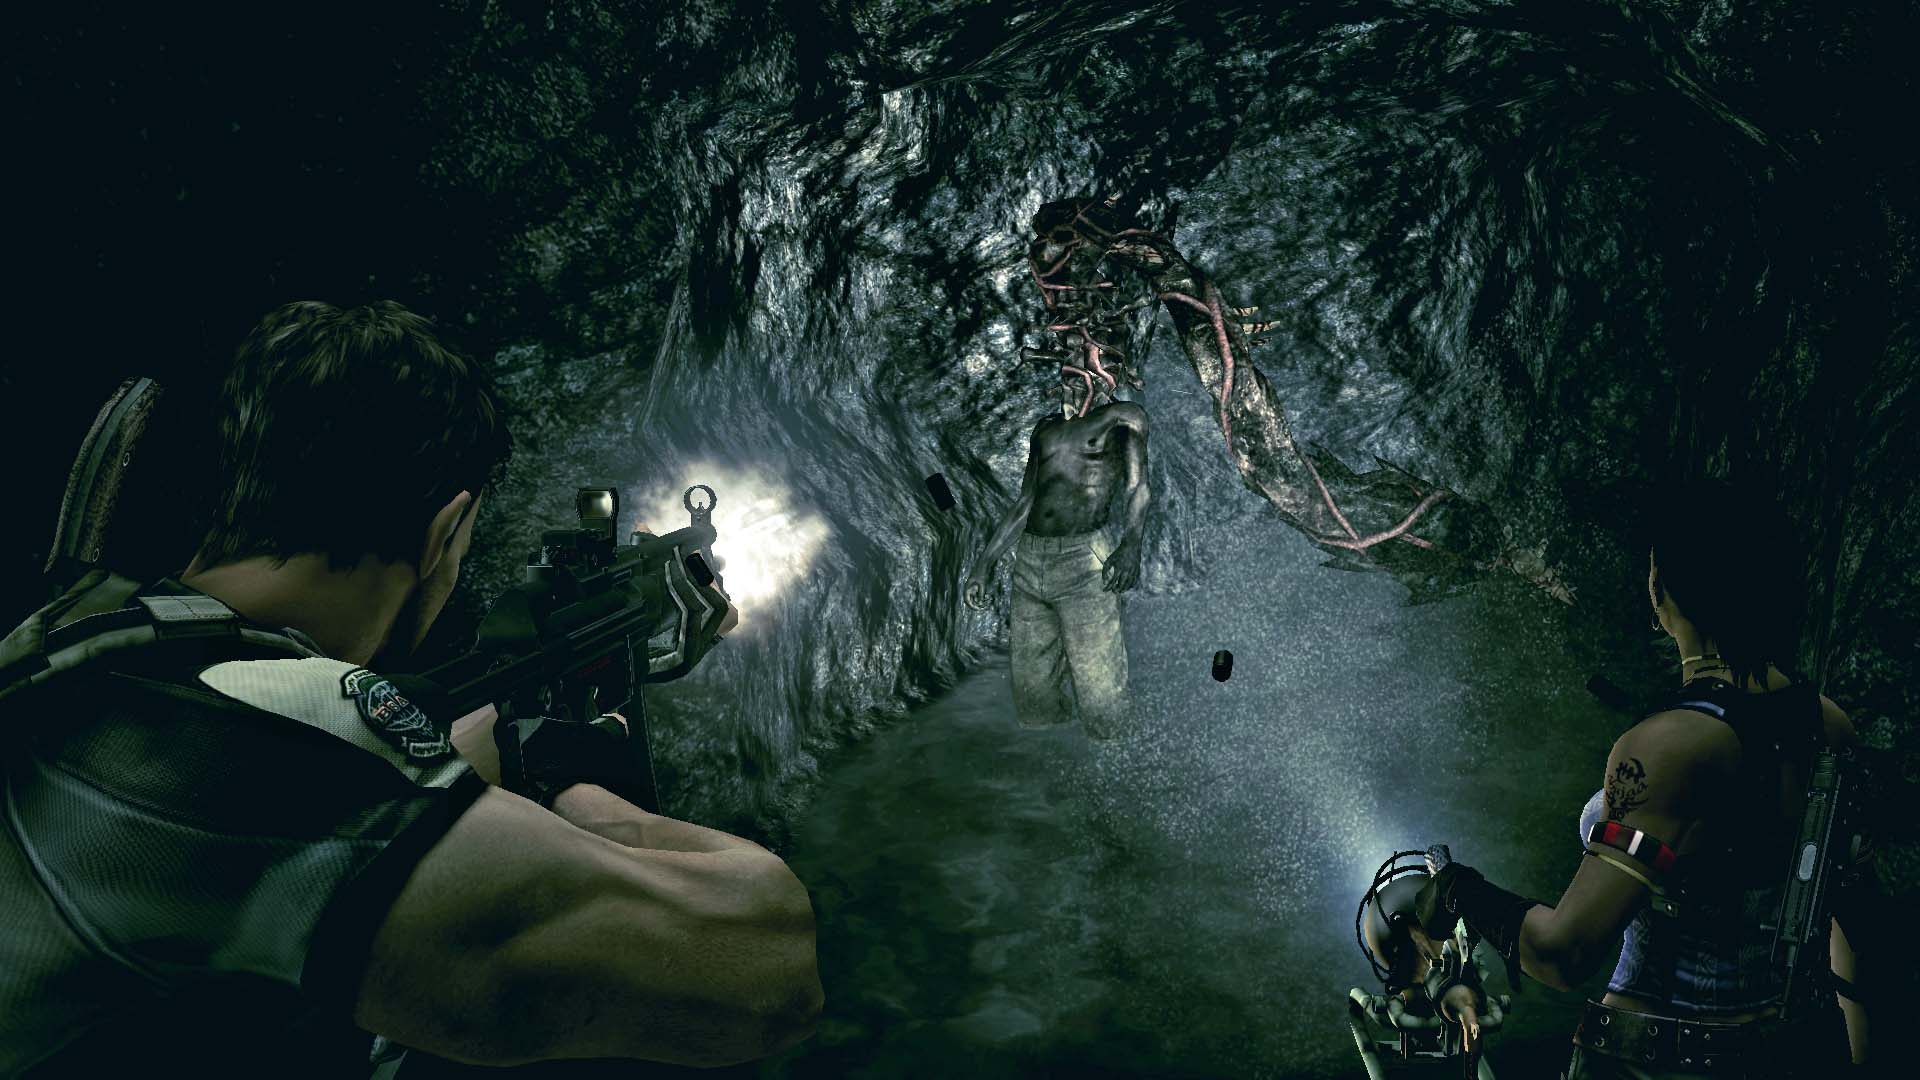 Resident Evil 5 For Ps4 And Xbox One Gets Release Date And New